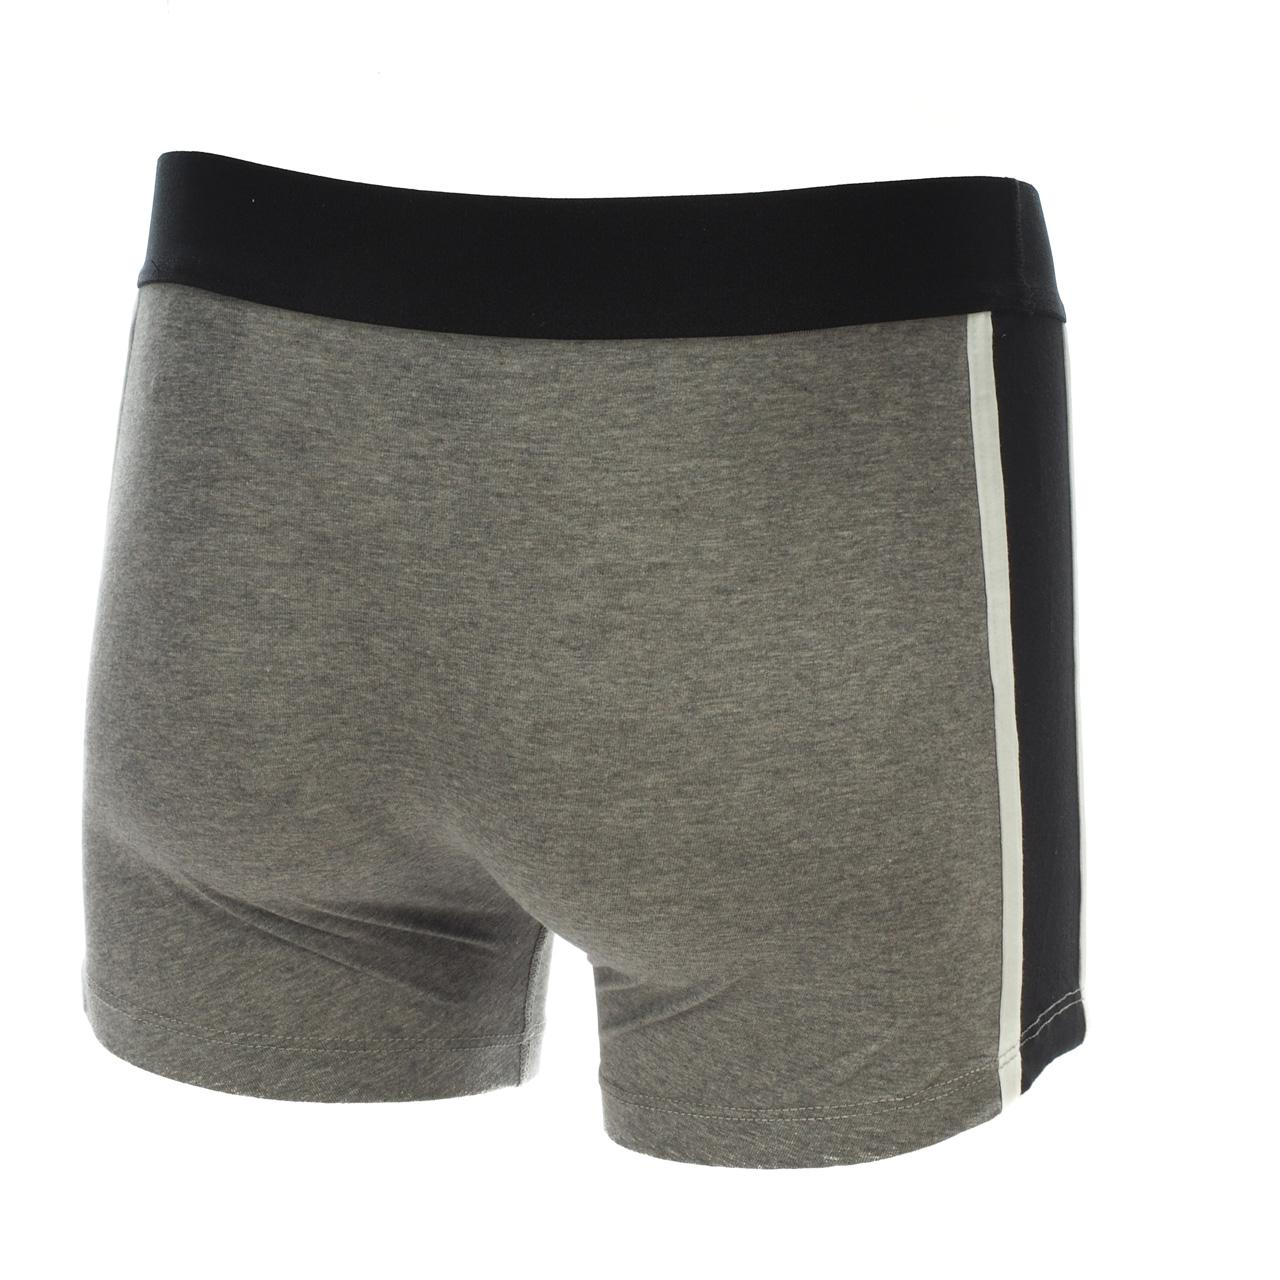 Underwear-Boxer-Puma-Bold-Blk-Groups-Boxer-x2-Assorted-18749-New thumbnail 3